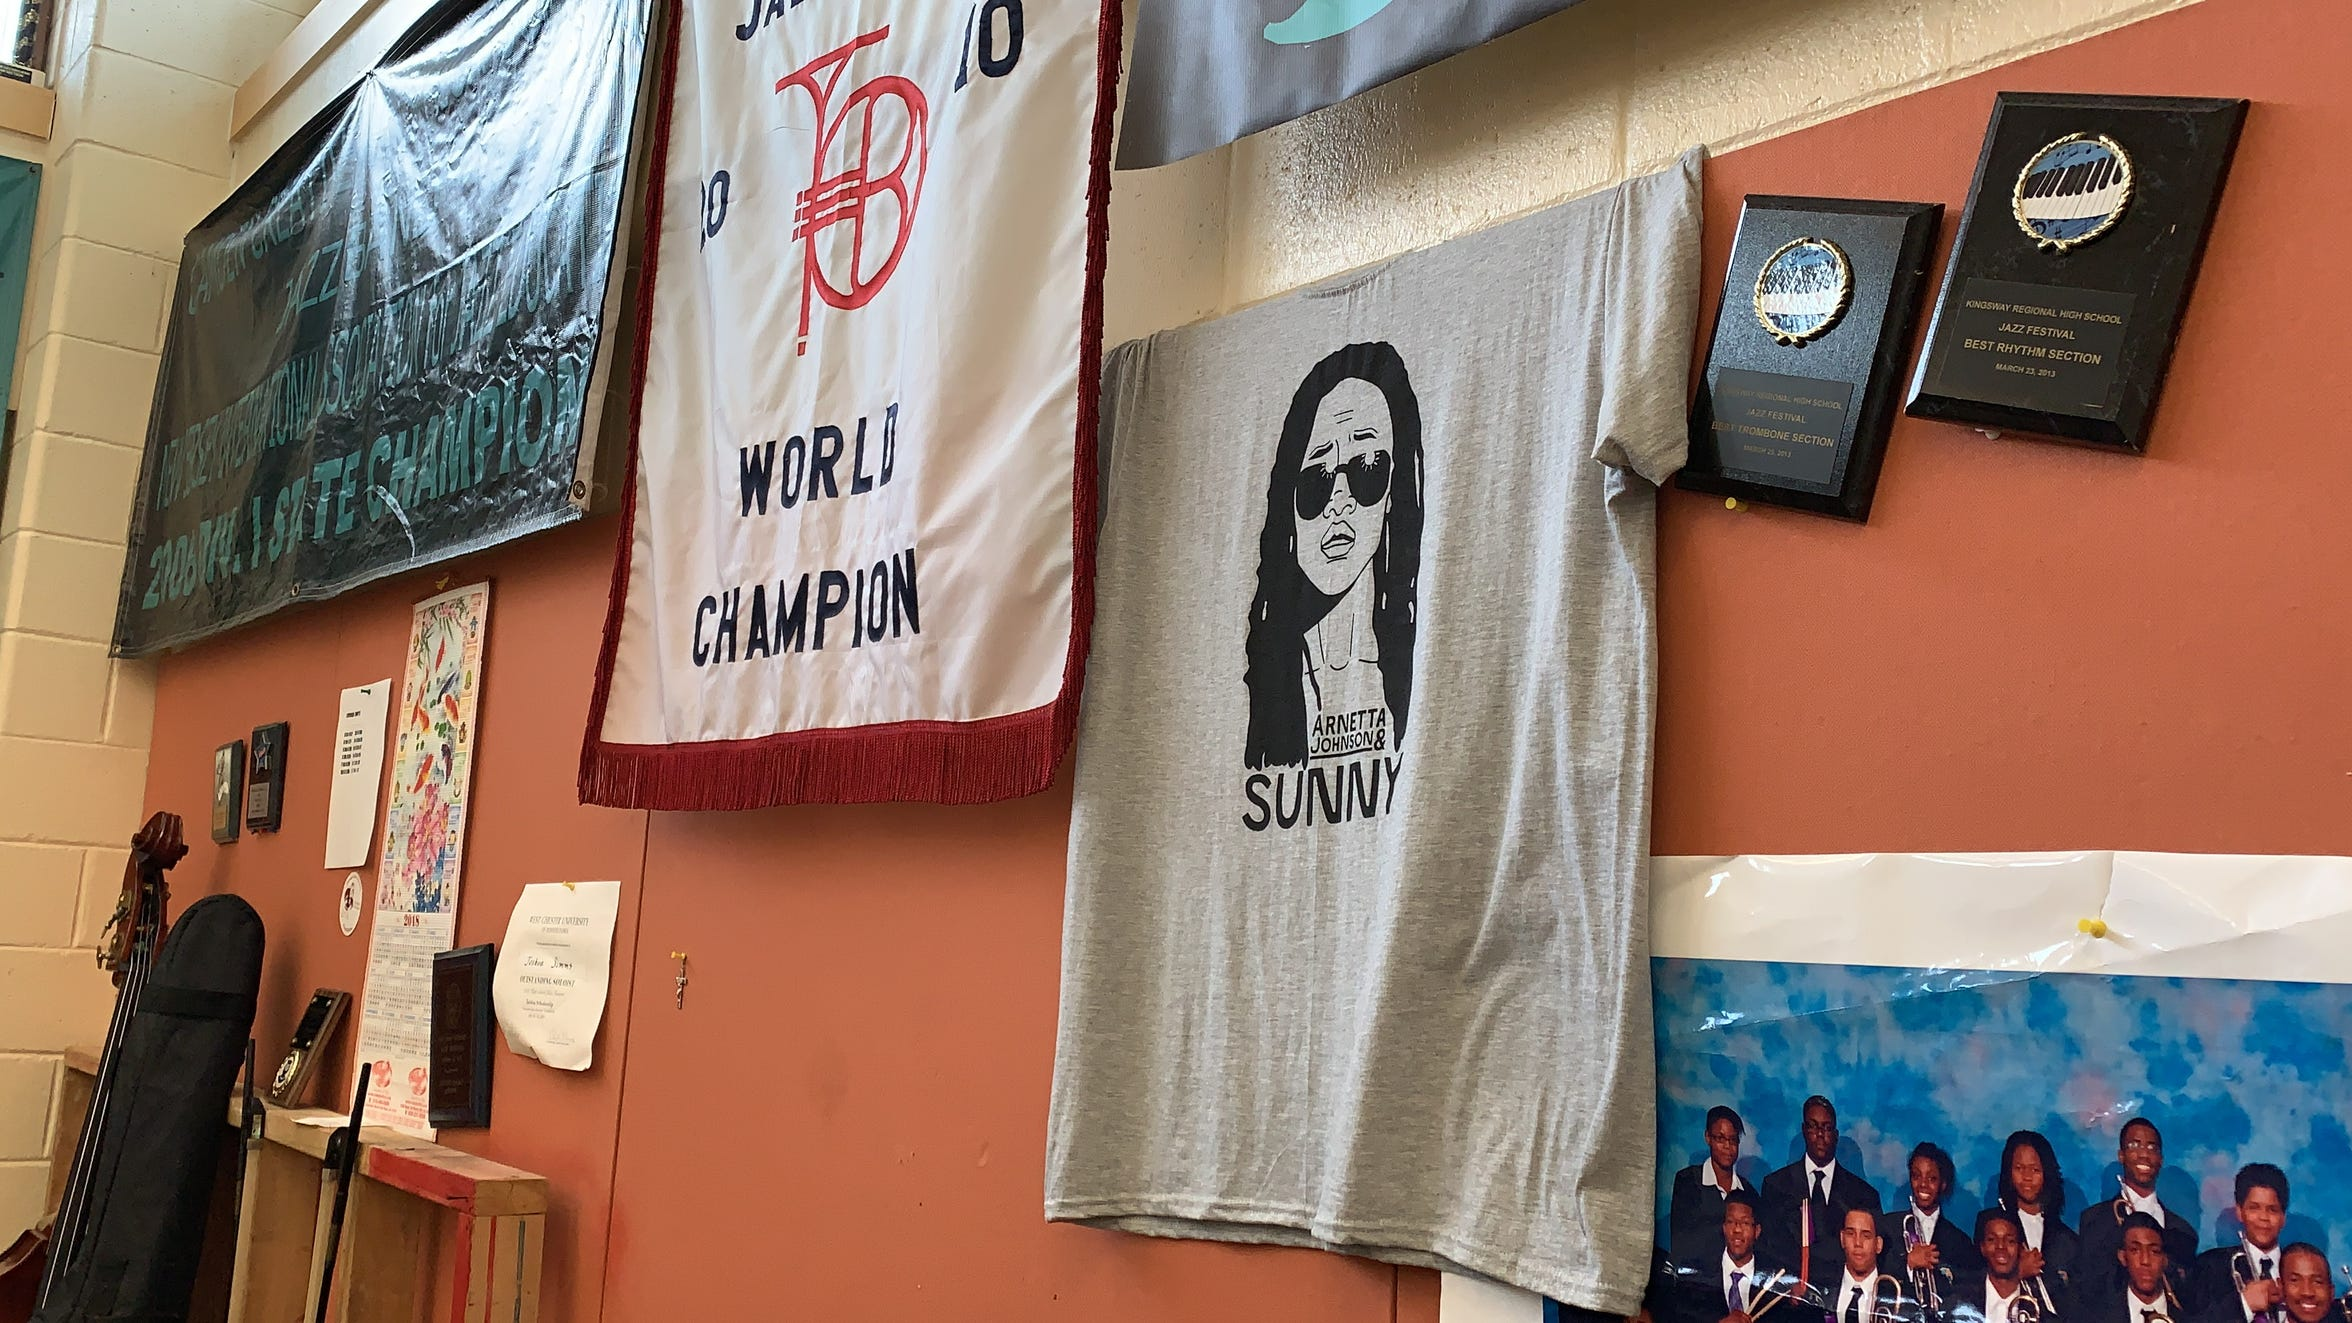 A t-shirt for Creative Arts Morgan Village Academy alumnus Arnetta Johnson's band Arnetta Johnson & Sunny hangs in the high school's band room where she spent countless hours rehearsing.